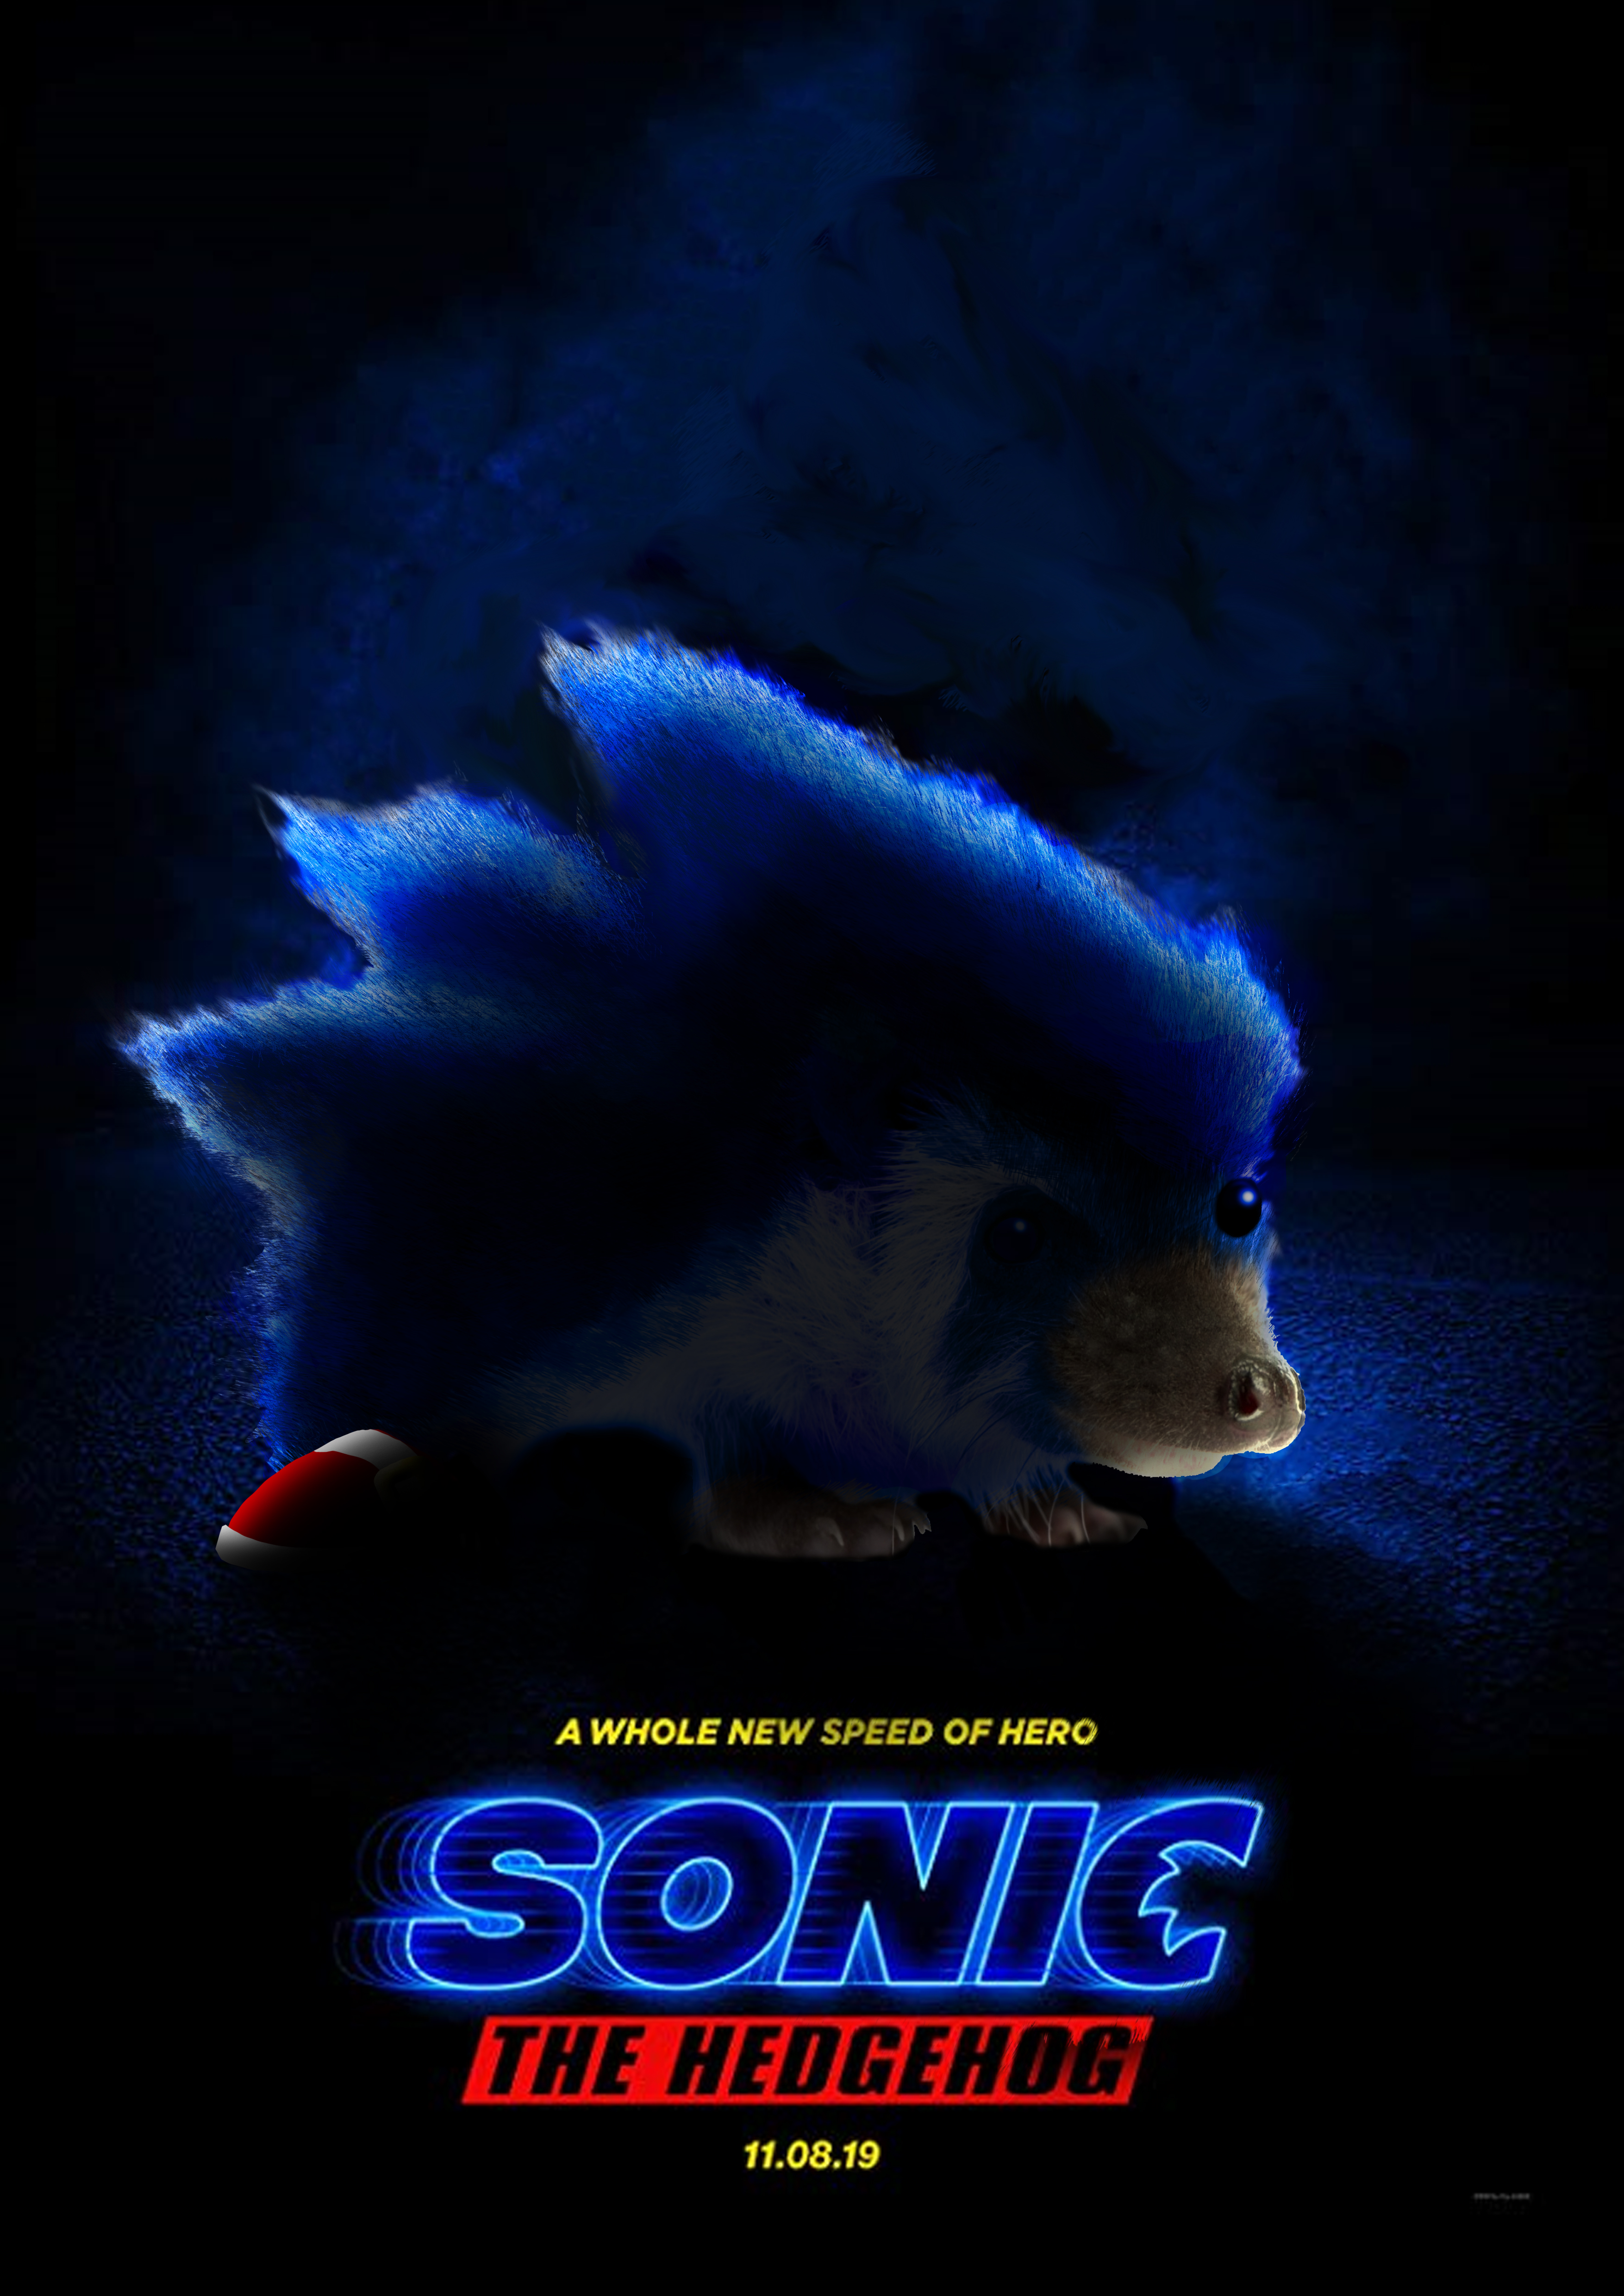 Upcoming Sonic Movie Looks Promising Sonic The Hedgehog Movie